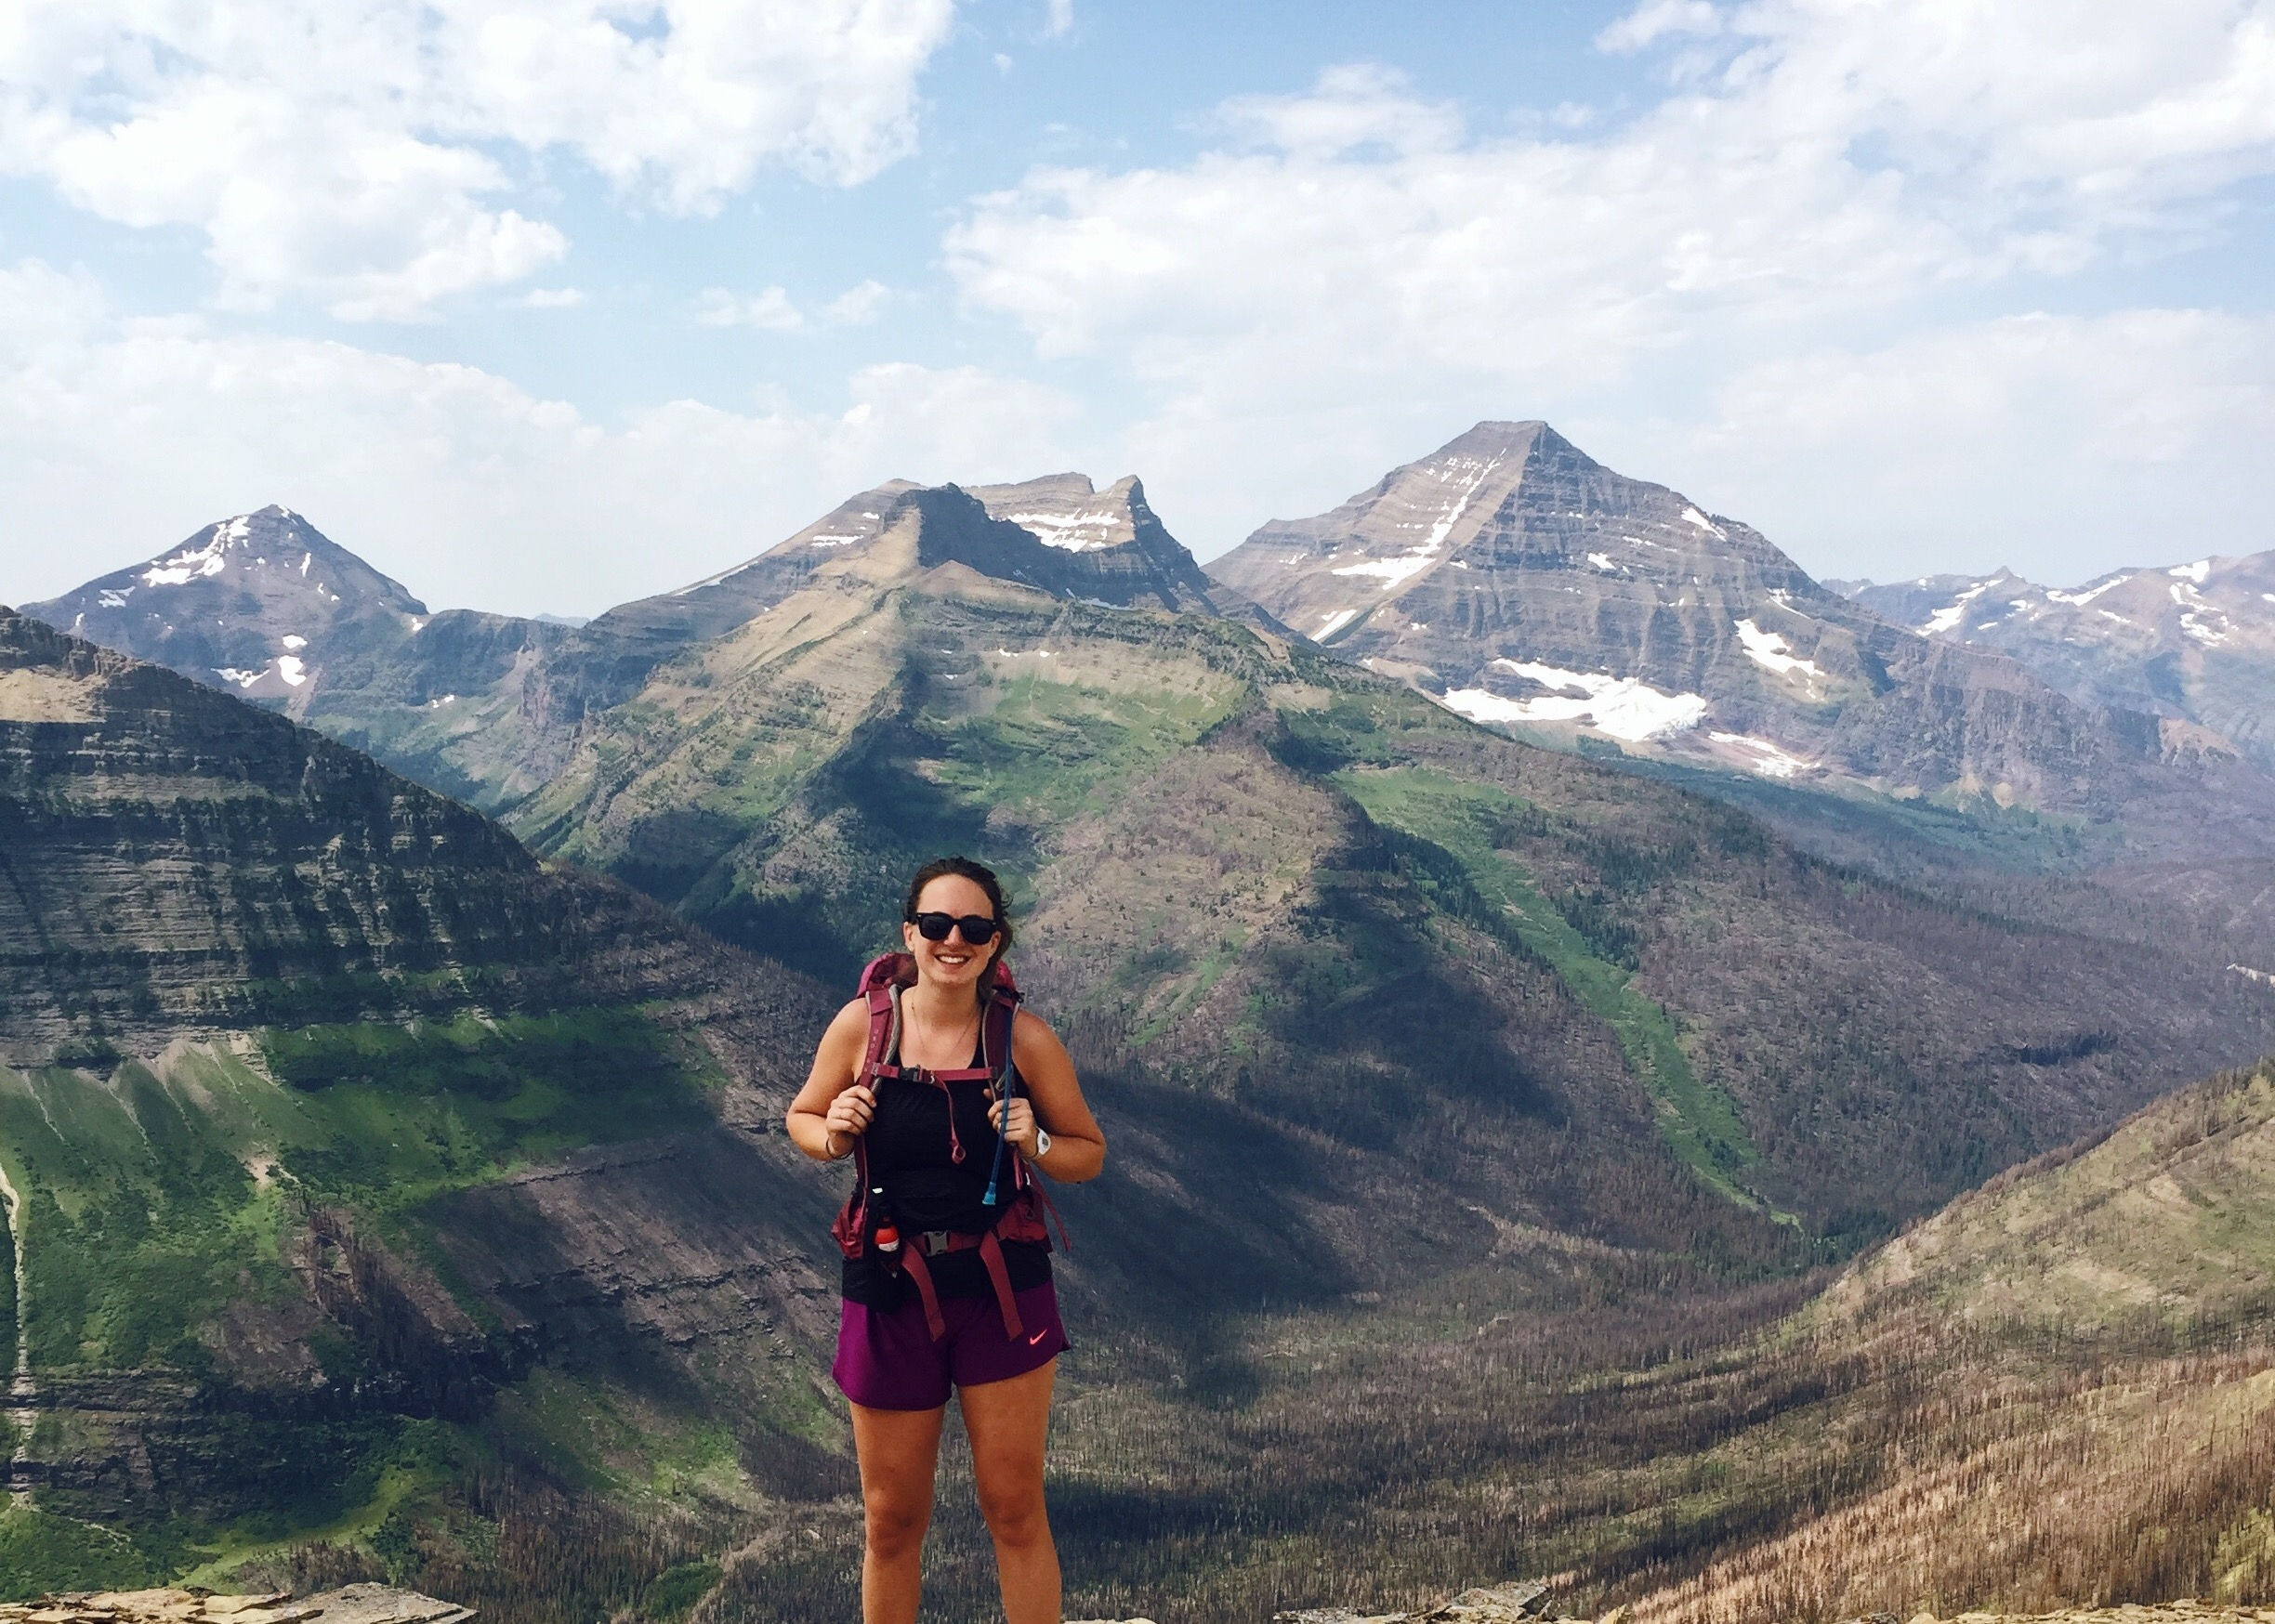 A 10 Year Dream: Why I'm Hiking the AT - The Trek